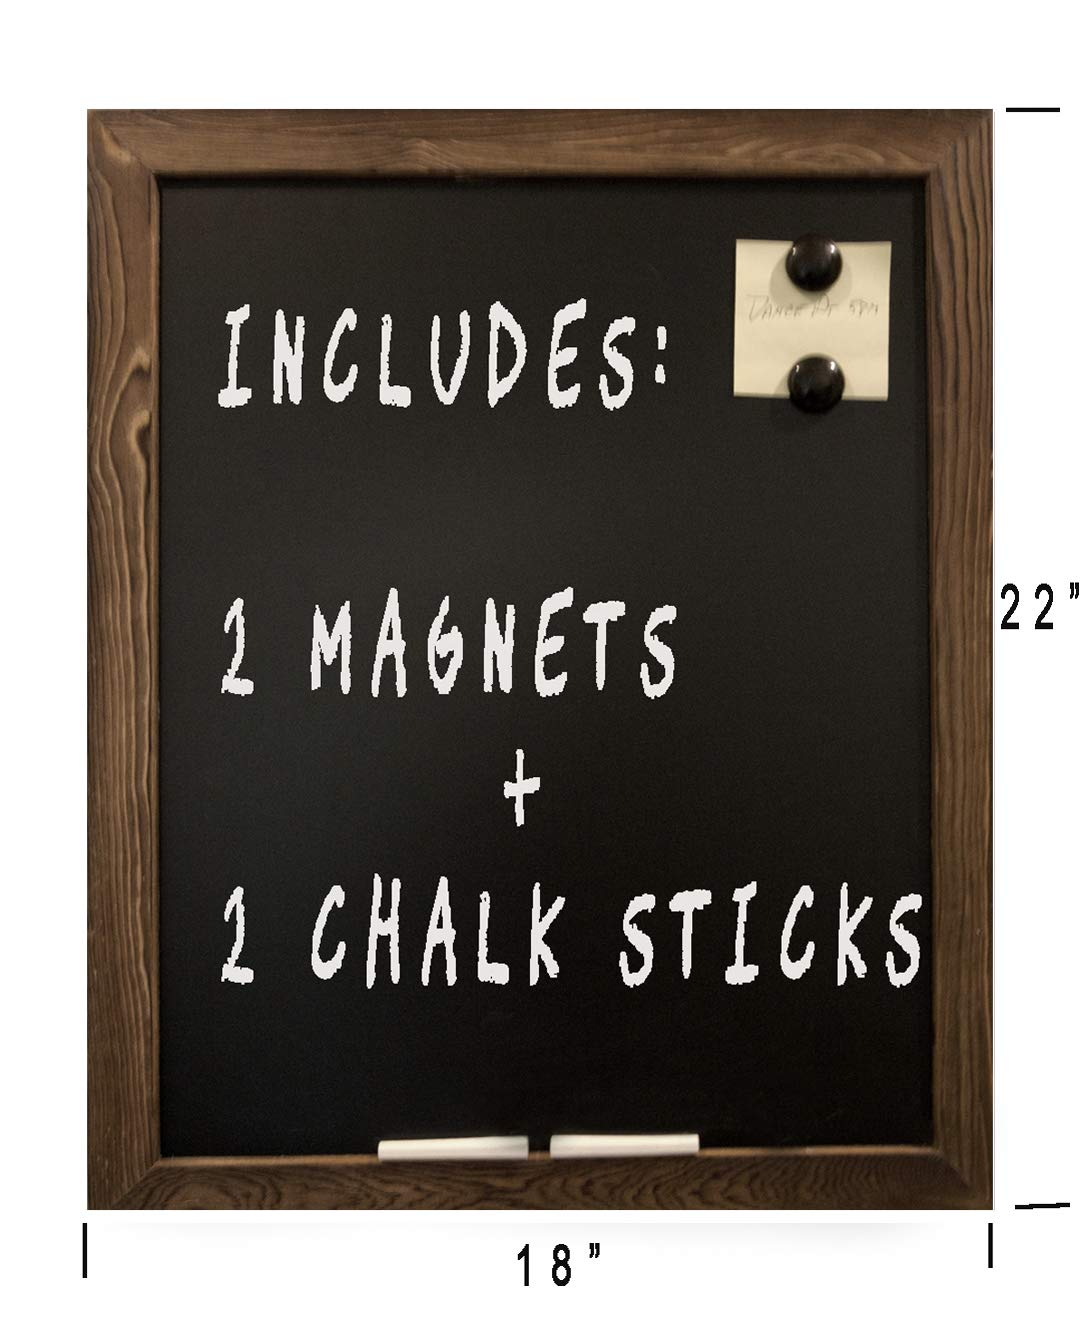 Chalkboard Magnetic Hanging Wall Chalk Board Sign Rustic Torched Wood Framed 18''x22'' Blackboard- Chalk and Magnets-Non Porous Chalk Board- Kitchen, Home Decor, Office, Bar, etc.